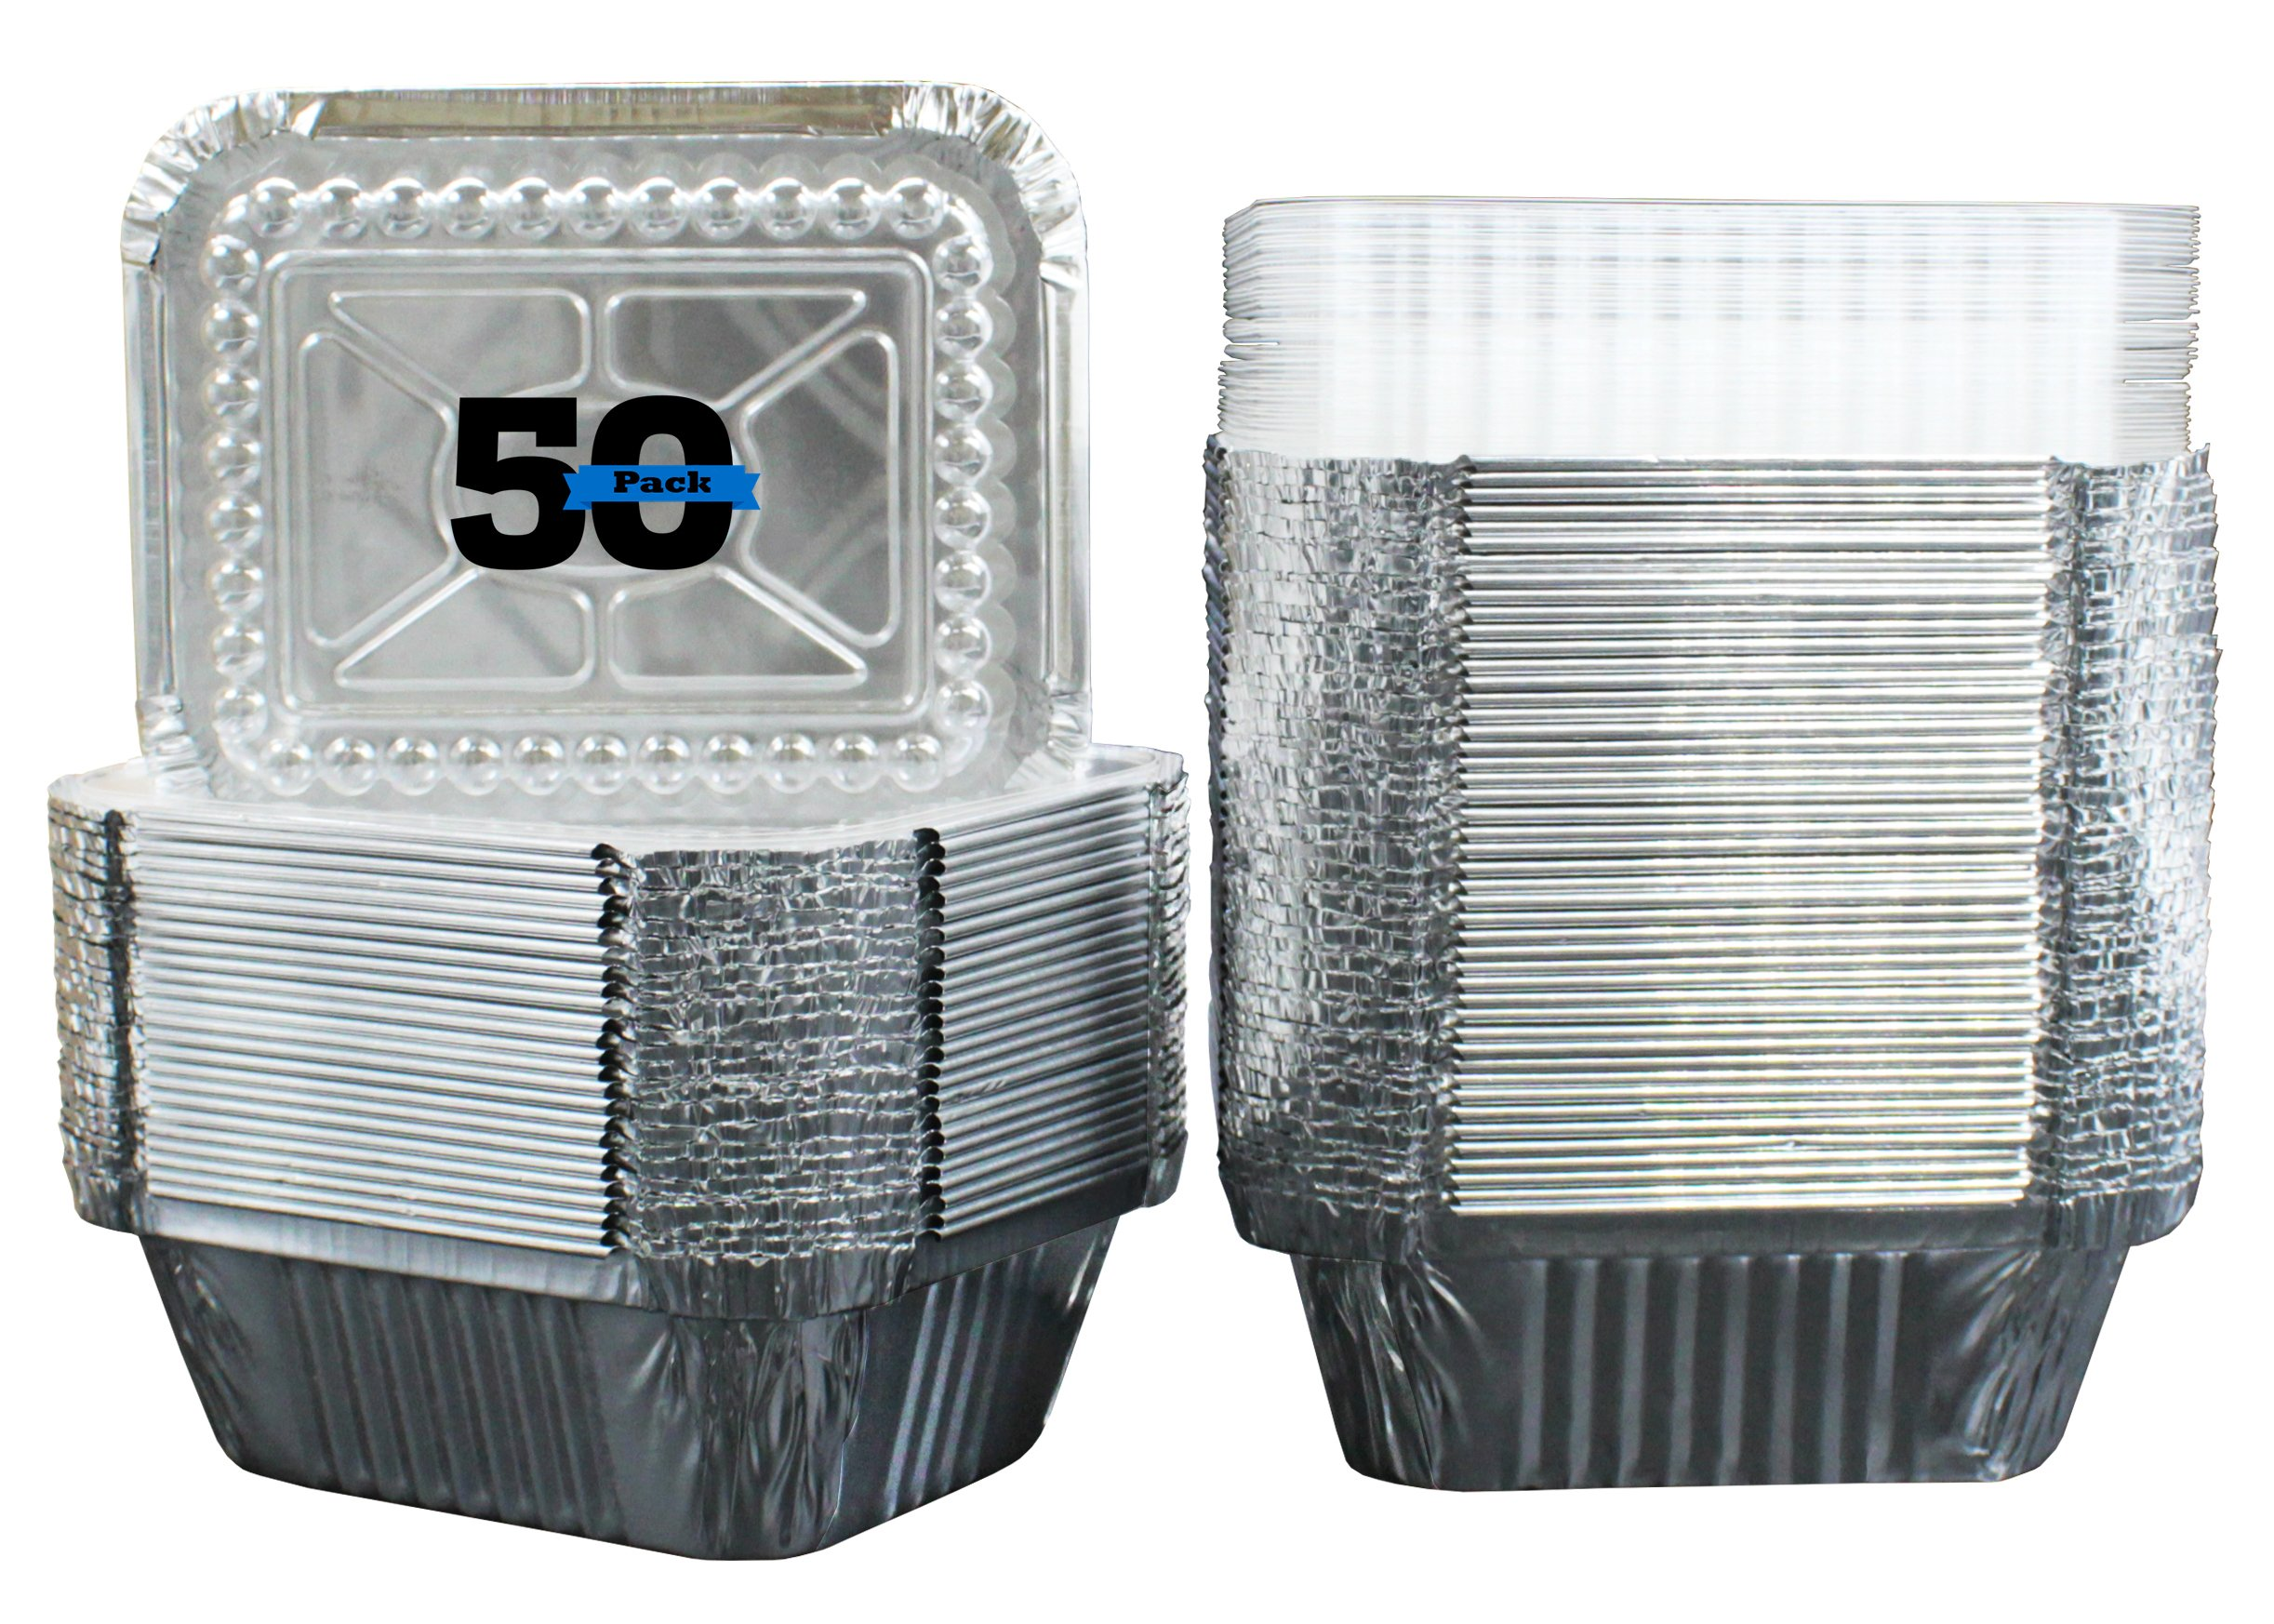 """50 Pack of Disposable Takeout Pans with Clear Lids – 1 Lb Capacity Aluminum Foil Food Containers – Strong Seal for Freshness – Eco-Friendly and Recyclable – 5x4"""" Inch Drip Pans - By MontoPack"""